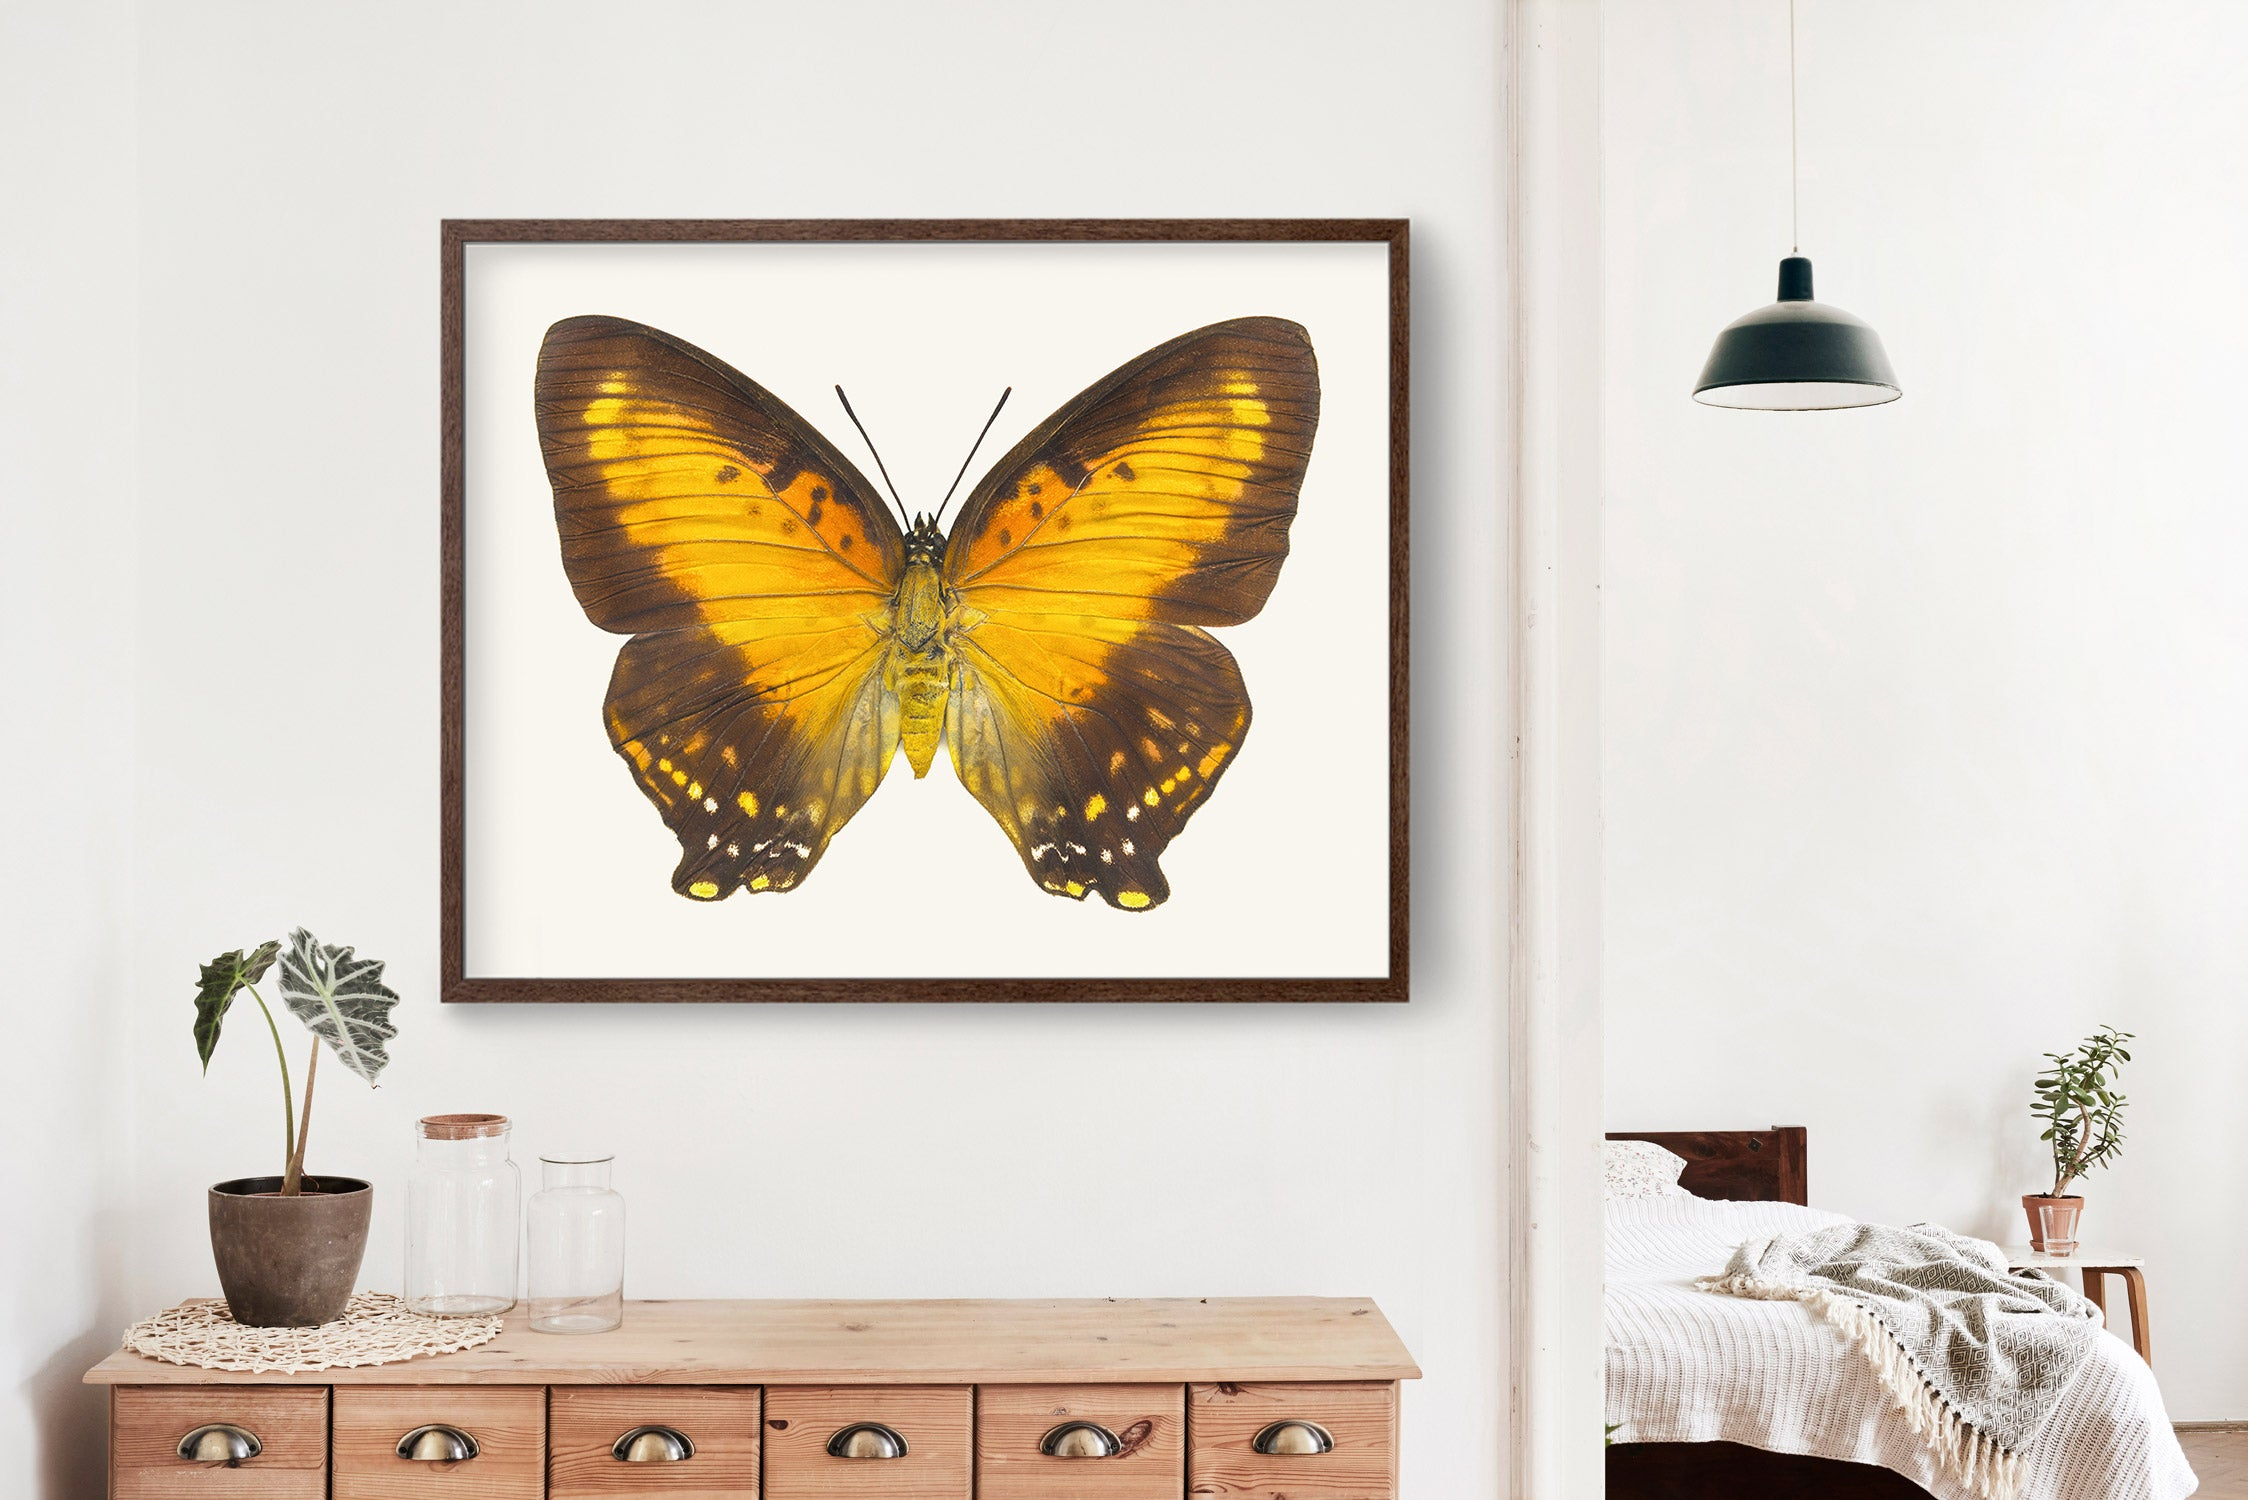 Butterfly Photo No. 14 - Charaxes zingha - Meadow Wanderer Butterfly Print